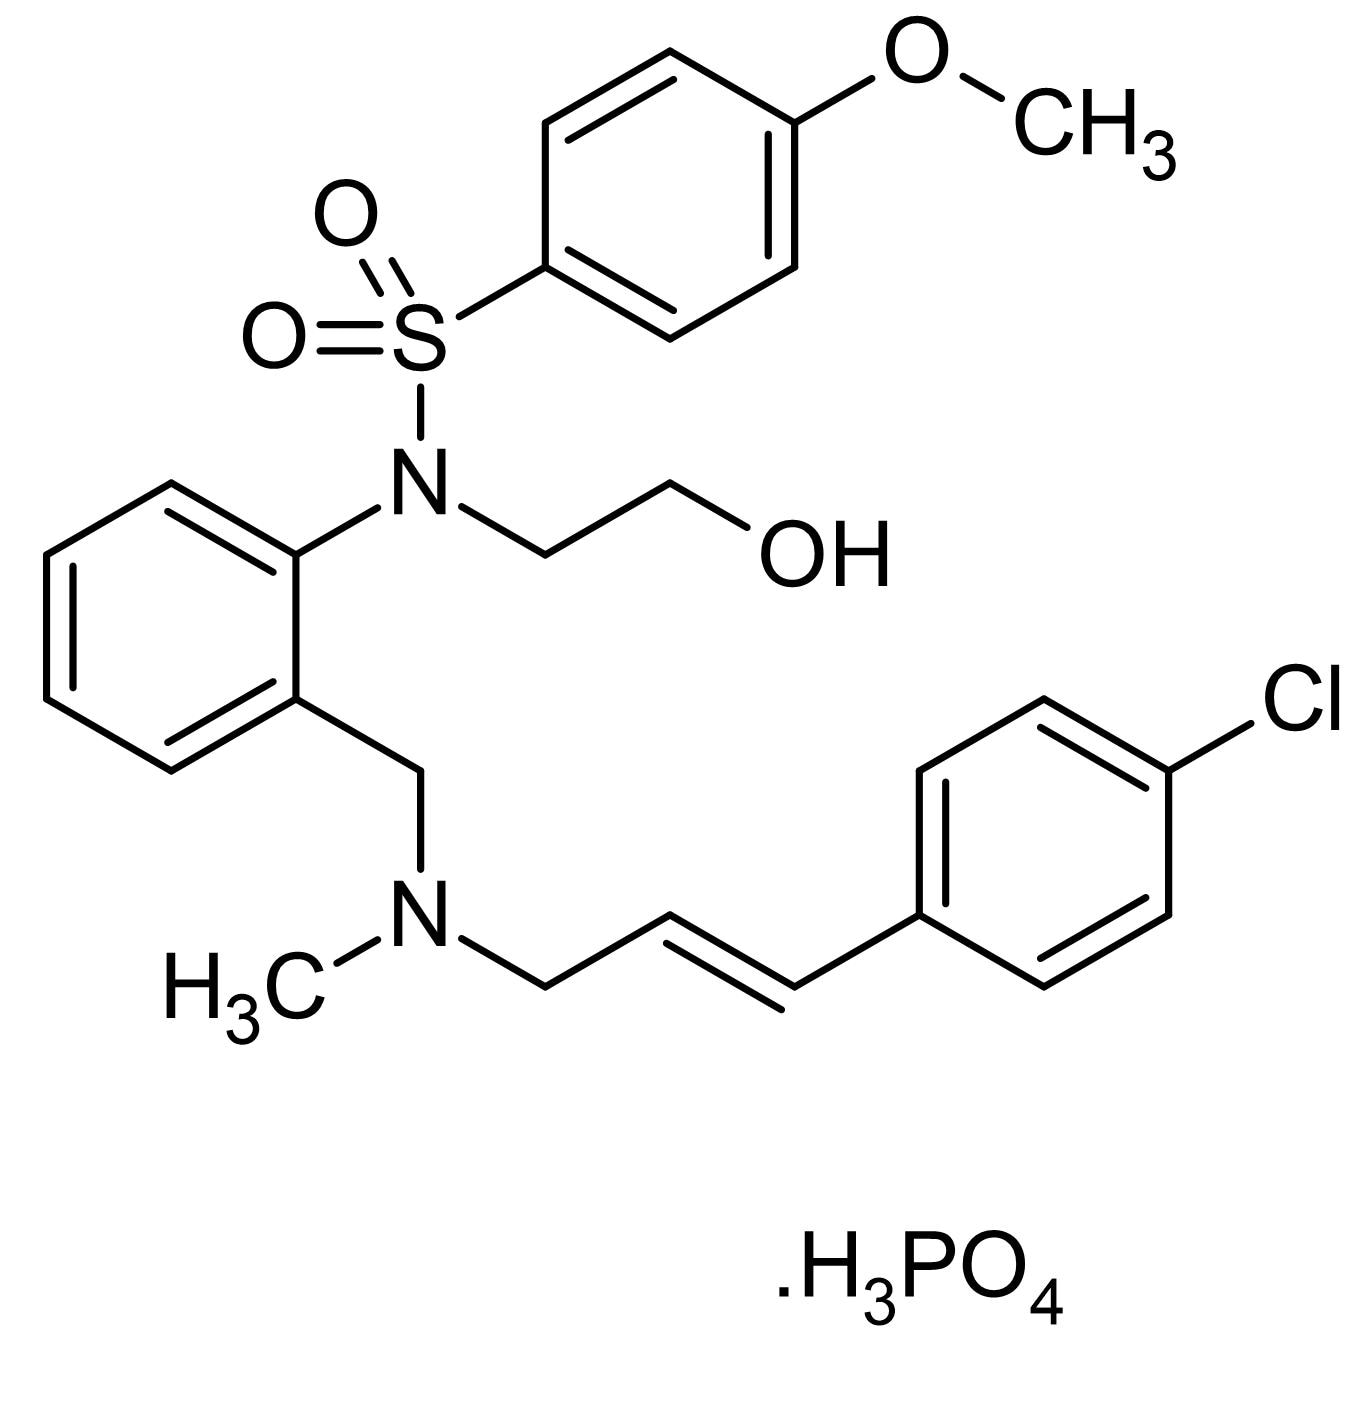 Chemical Structure - KN-93 (water soluble), CaMK II inhibitor (ab120980)